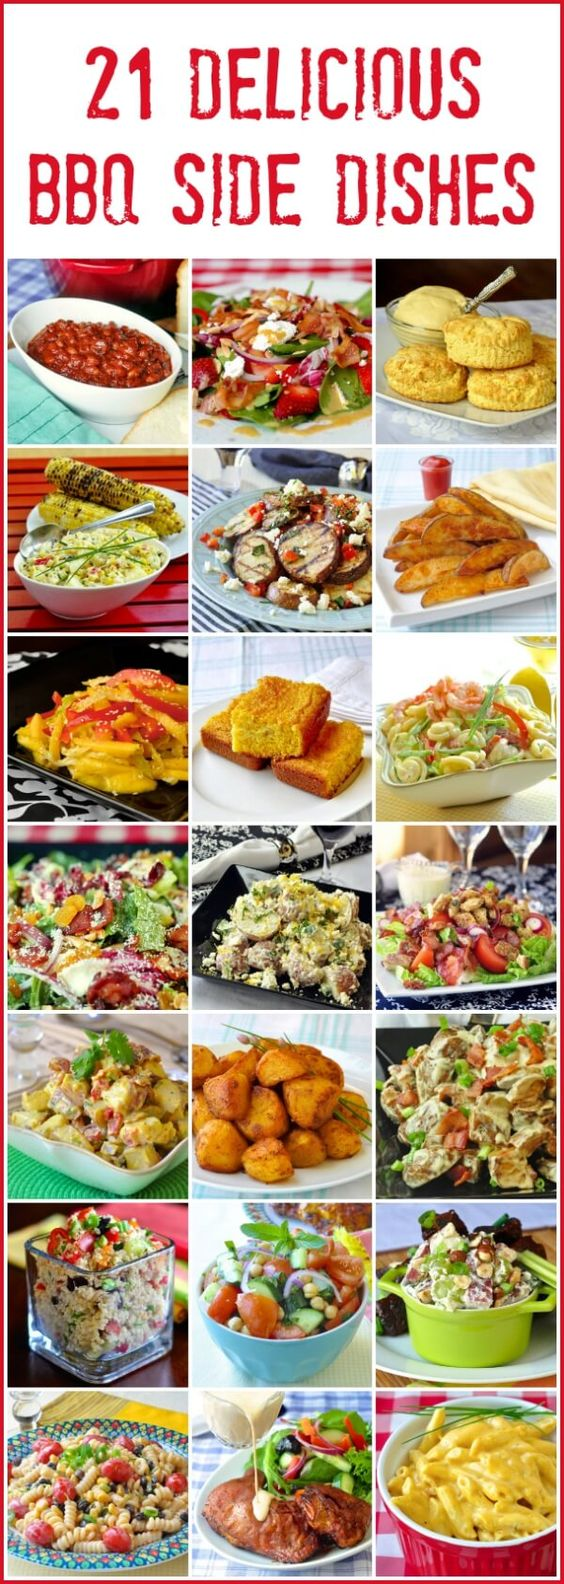 Top 28 side dishes to go with bbq chicken bbq side for What sides go with barbecue chicken